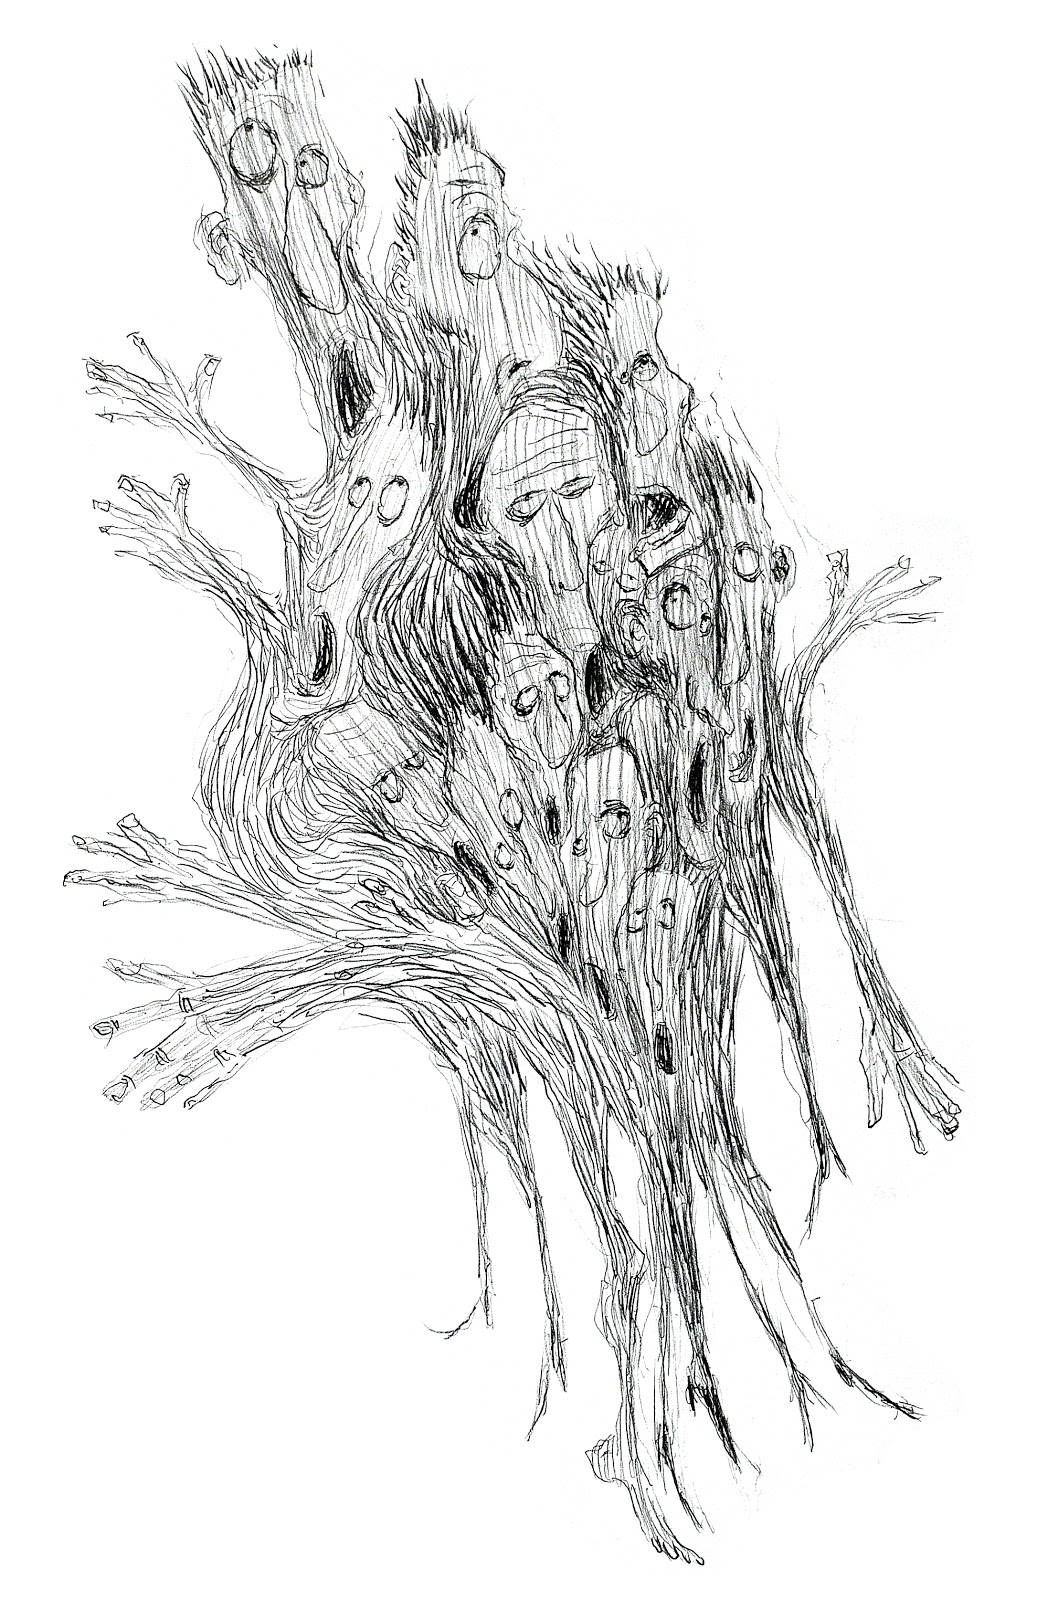 099d-paranorman-concept-art-character-design--Group_of_ghosts_6.jpg